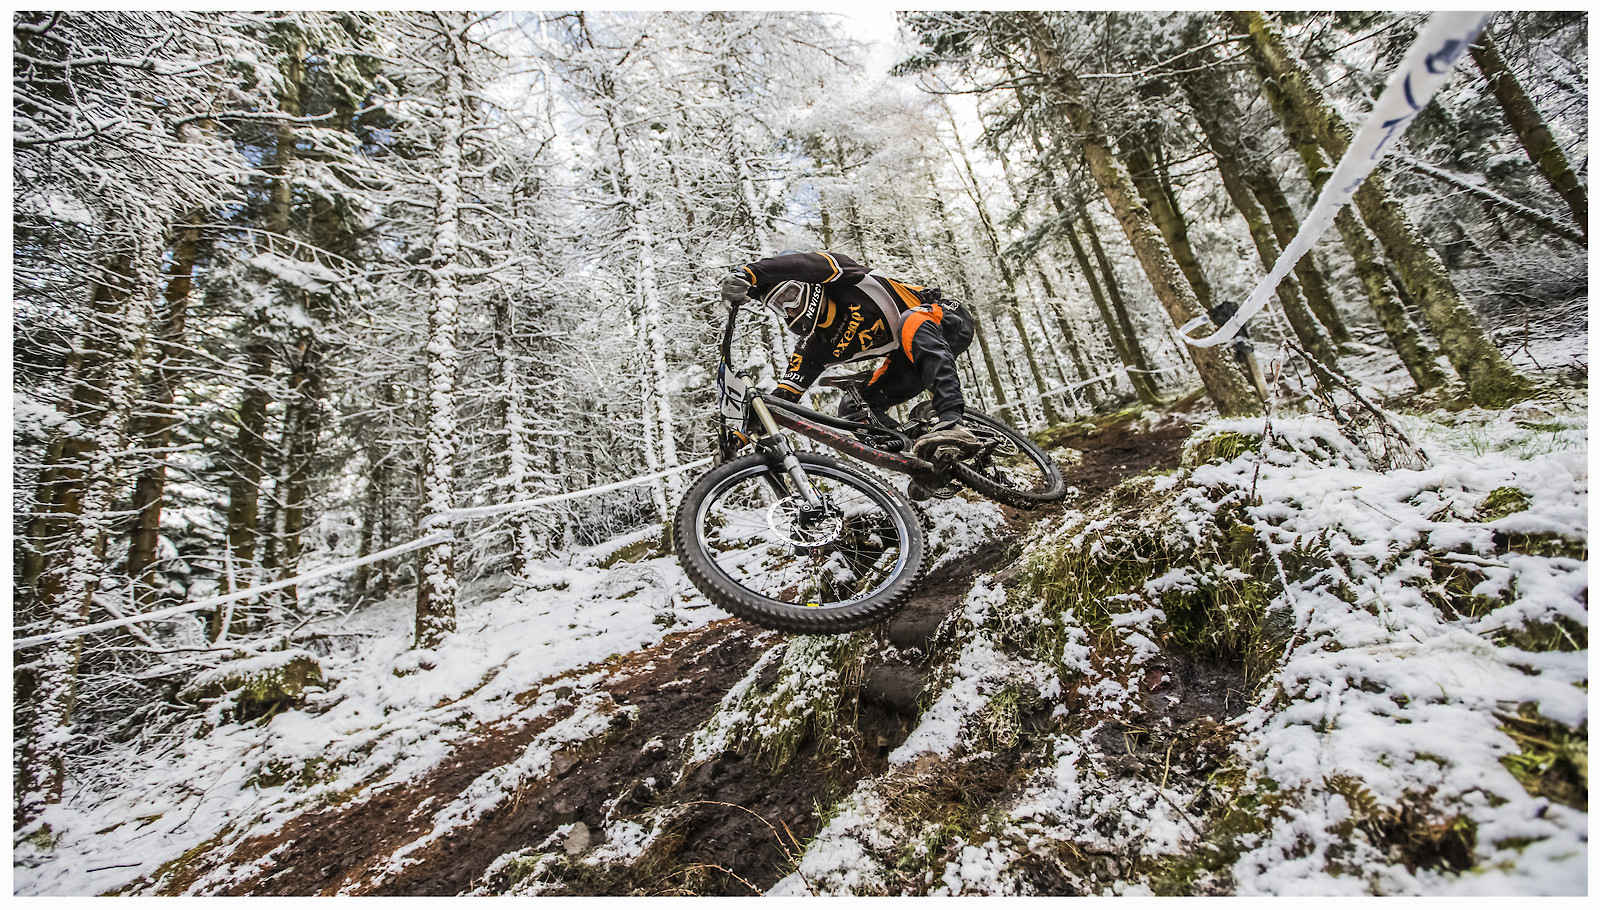 13331634565 9284462204 o - phunkt.com - Mountain Biking Pictures - Vital MTB